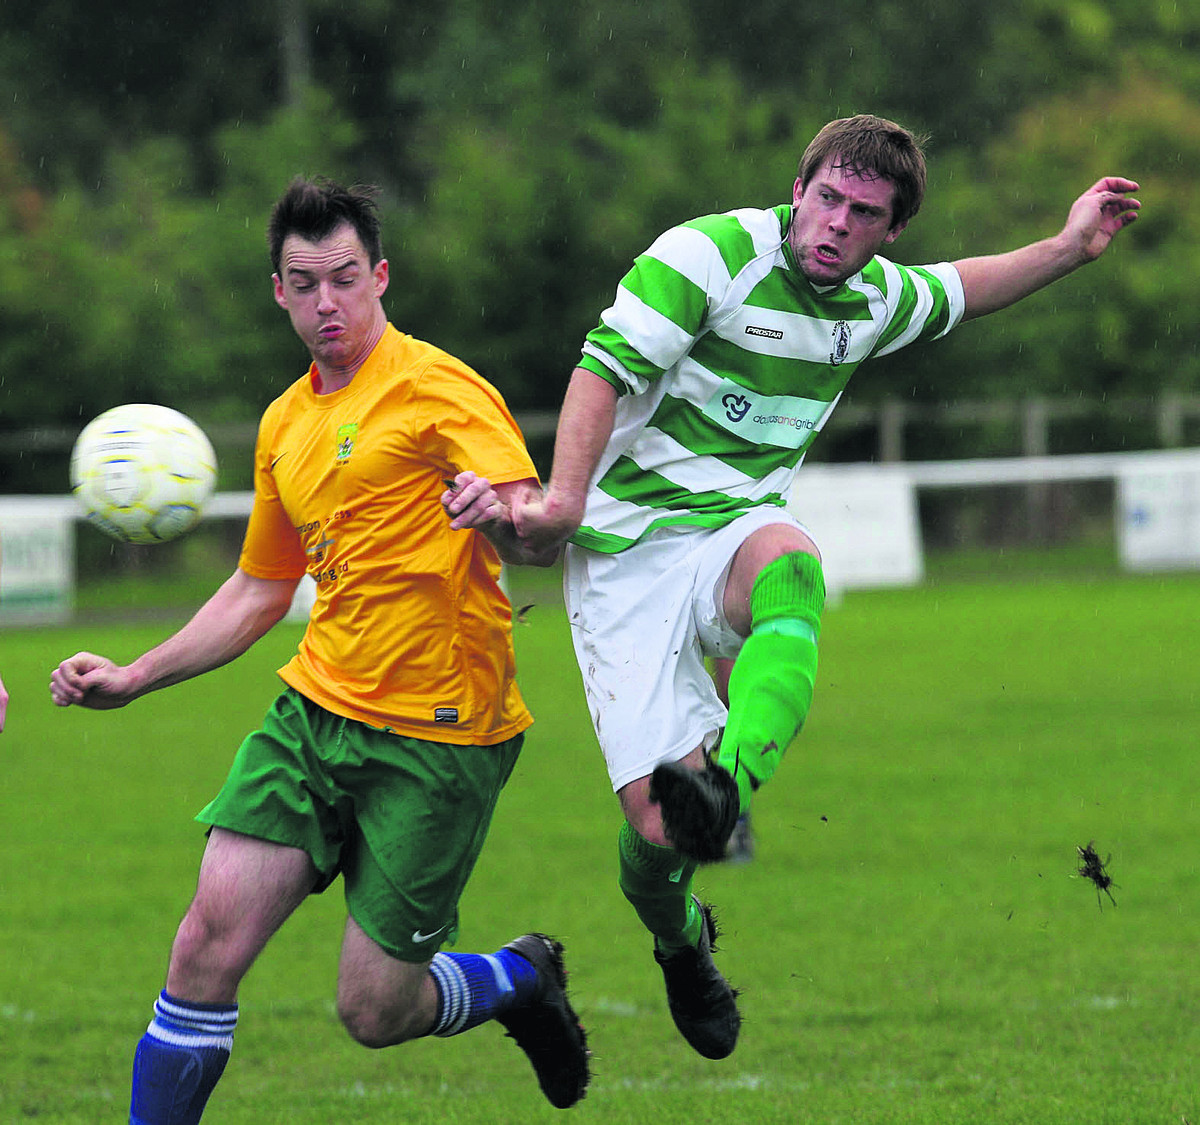 Richie Claydon shoots for goal for Wantage Town against Abingdon Town